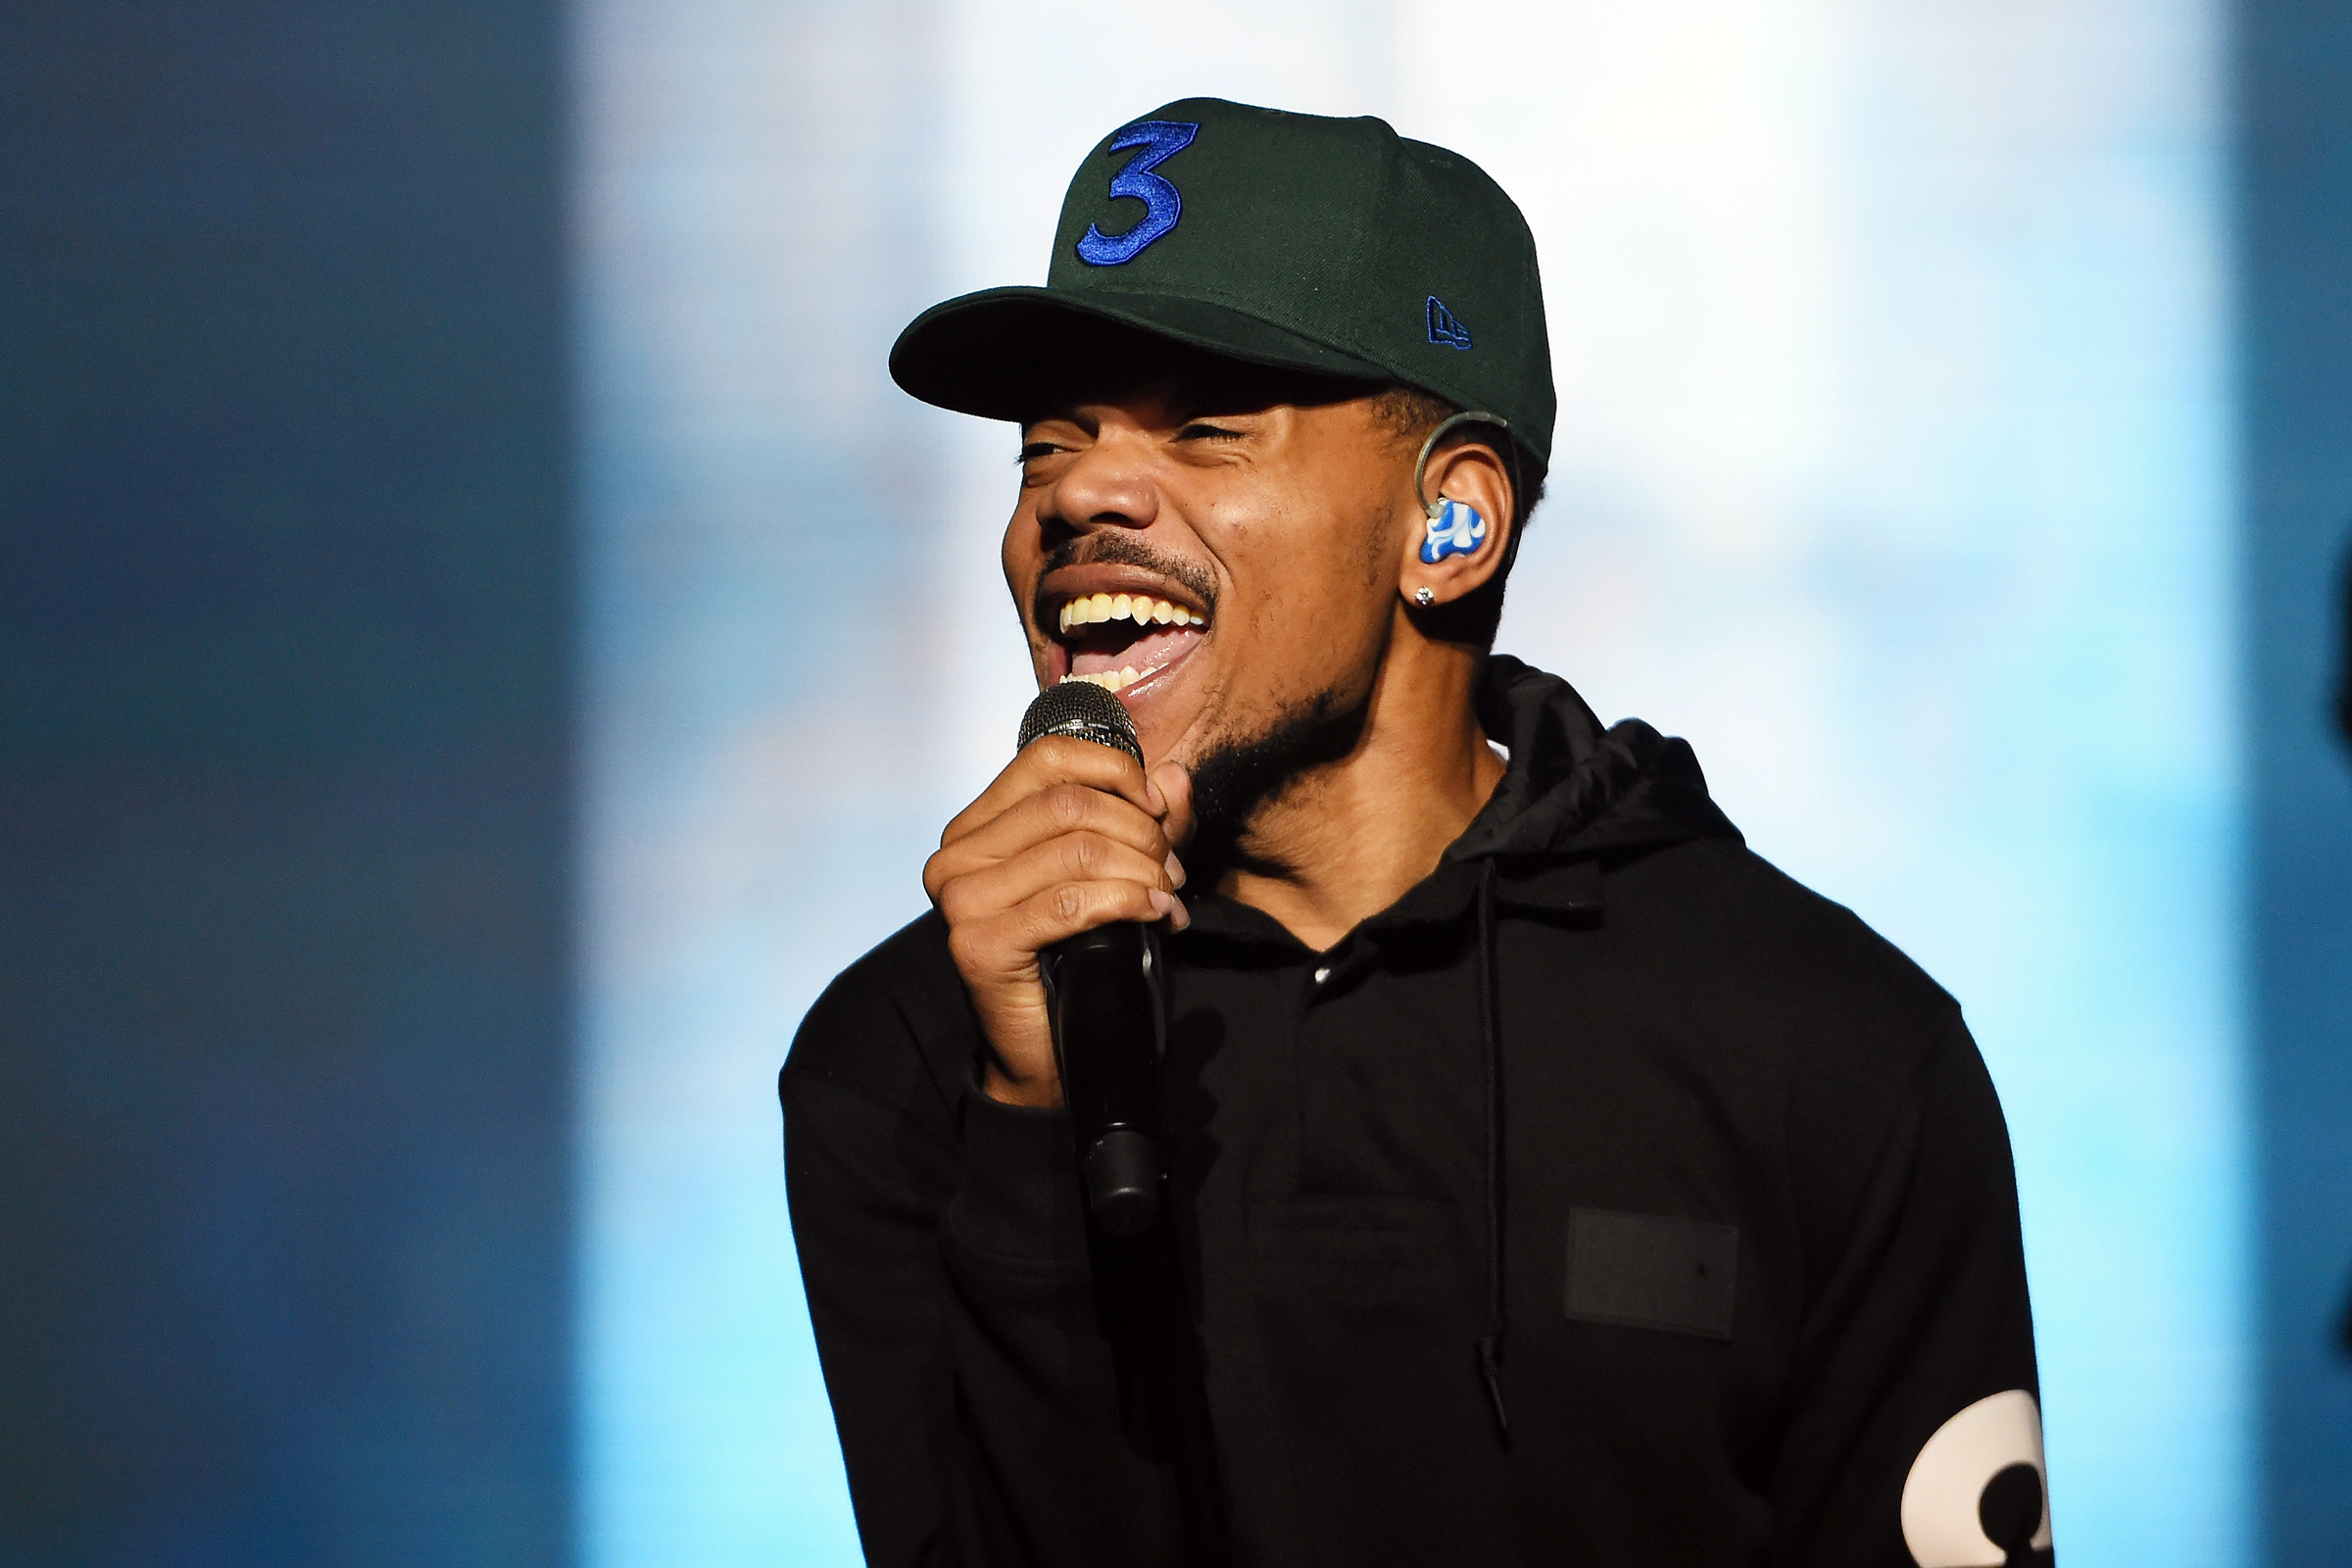 Chance the Rapper Drops All-Star Debut Album 'The Big Day